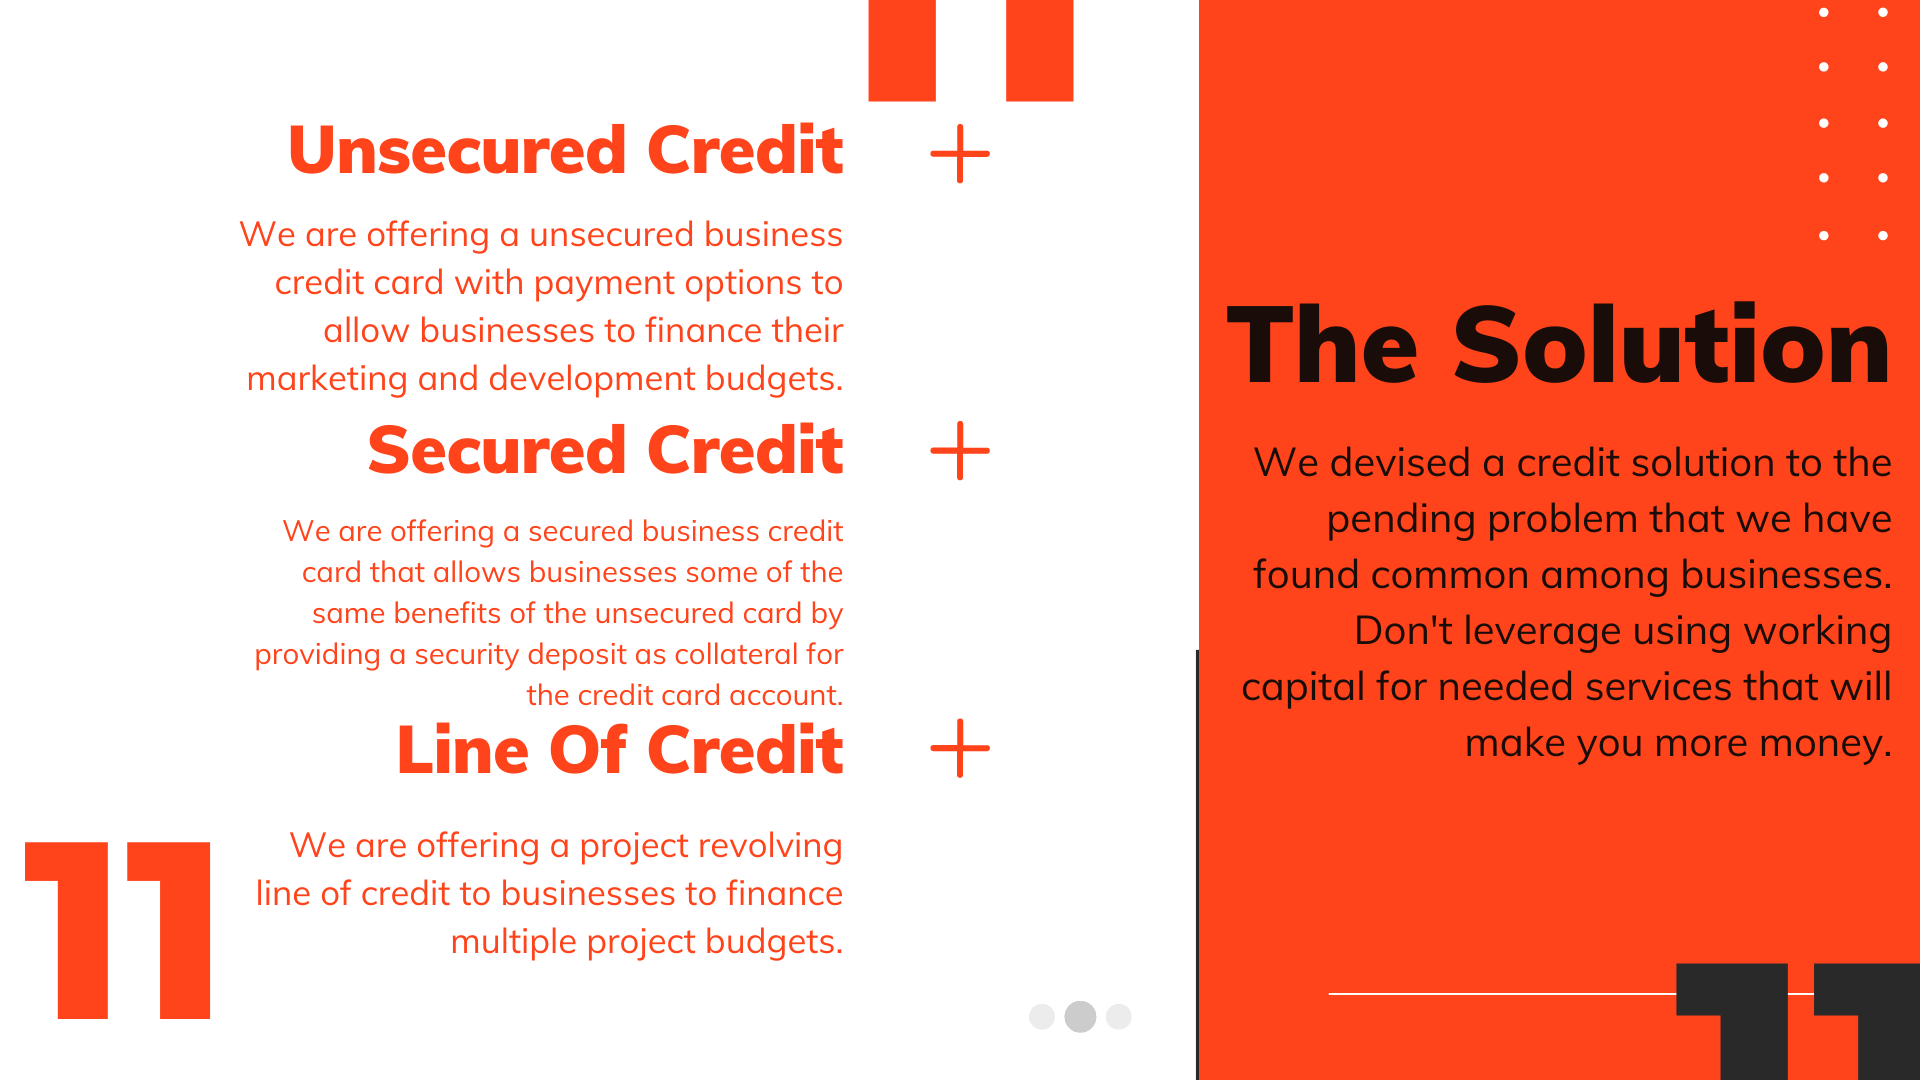 The Solution | We devised a credit solution to the pending problem that we have found common among businesses. Don't leverage using working capital for needed services that will make you more money. Unsecured Credit | We are offering a unsecured business credit card with payment options to allow businesses to finance their marketing and development budgets. Secured Credit | We are offering a secured business credit card that allows businesses some of the same benefits of the unsecured card by providing a security deposit as collateral for the credit card account. Line Of Credit | We are offering a project revolving line of credit to businesses to finance multiple project budgets.